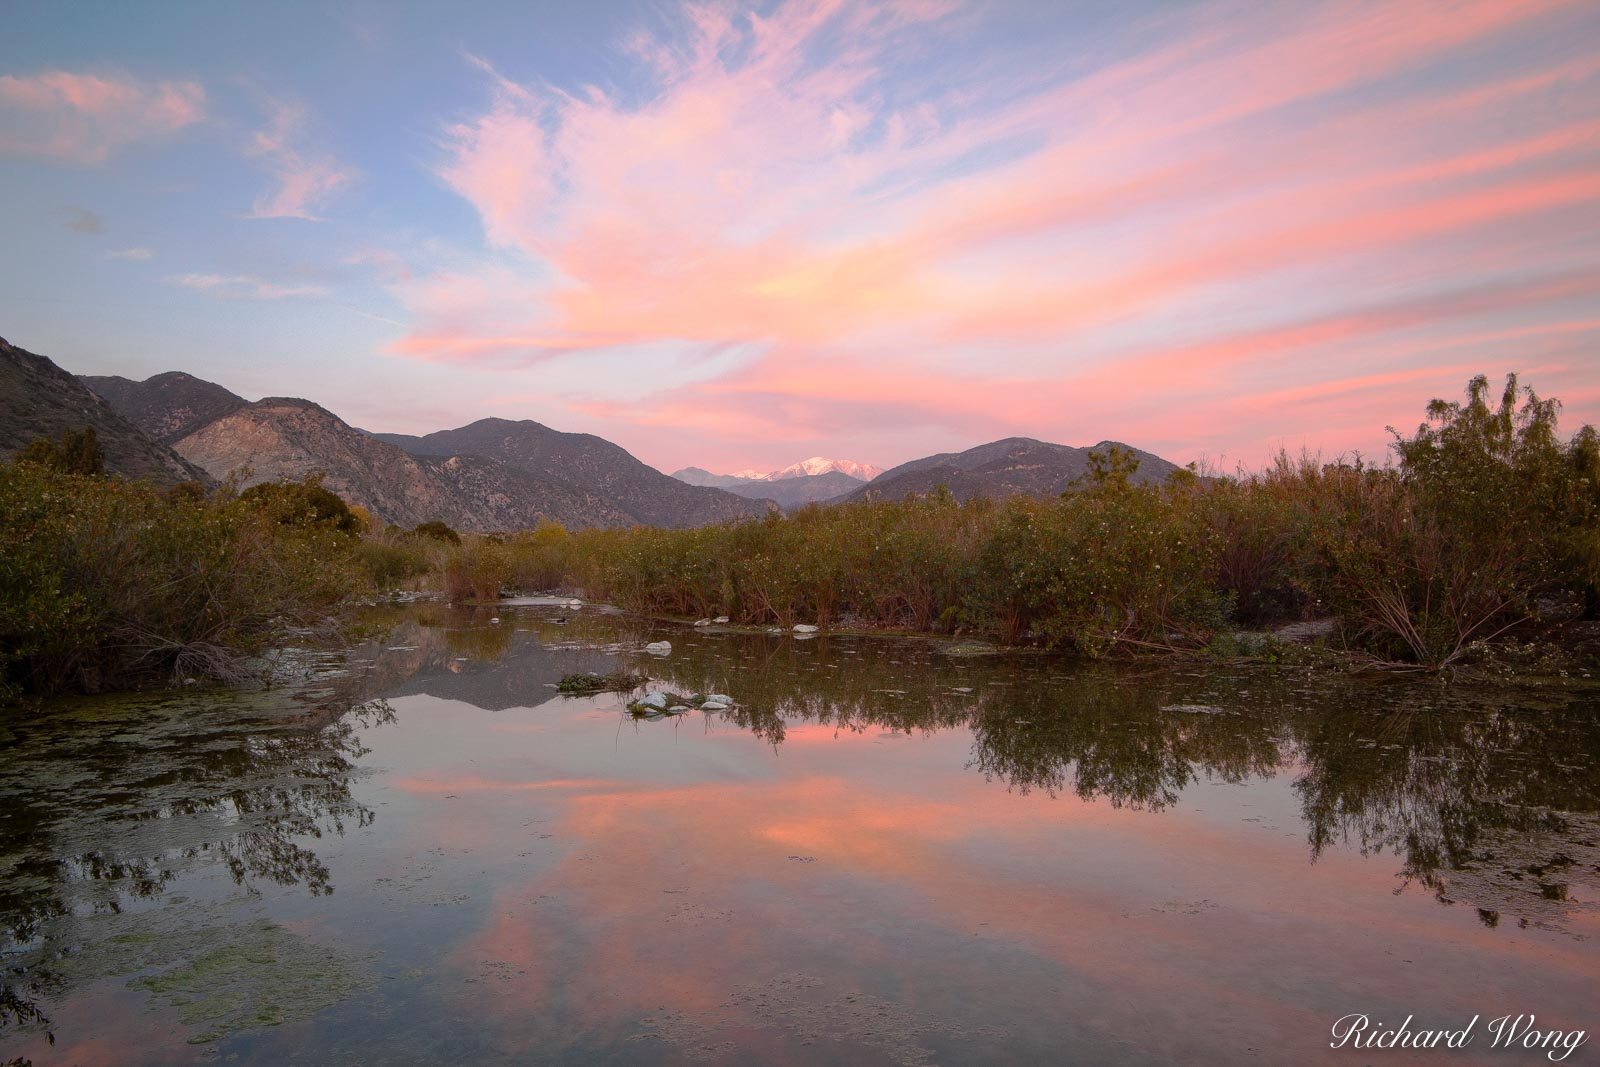 San Gabriel Mountains Sunset Alpenglow Reflection in Pond, San Gabriel Valley, California, photo, photo